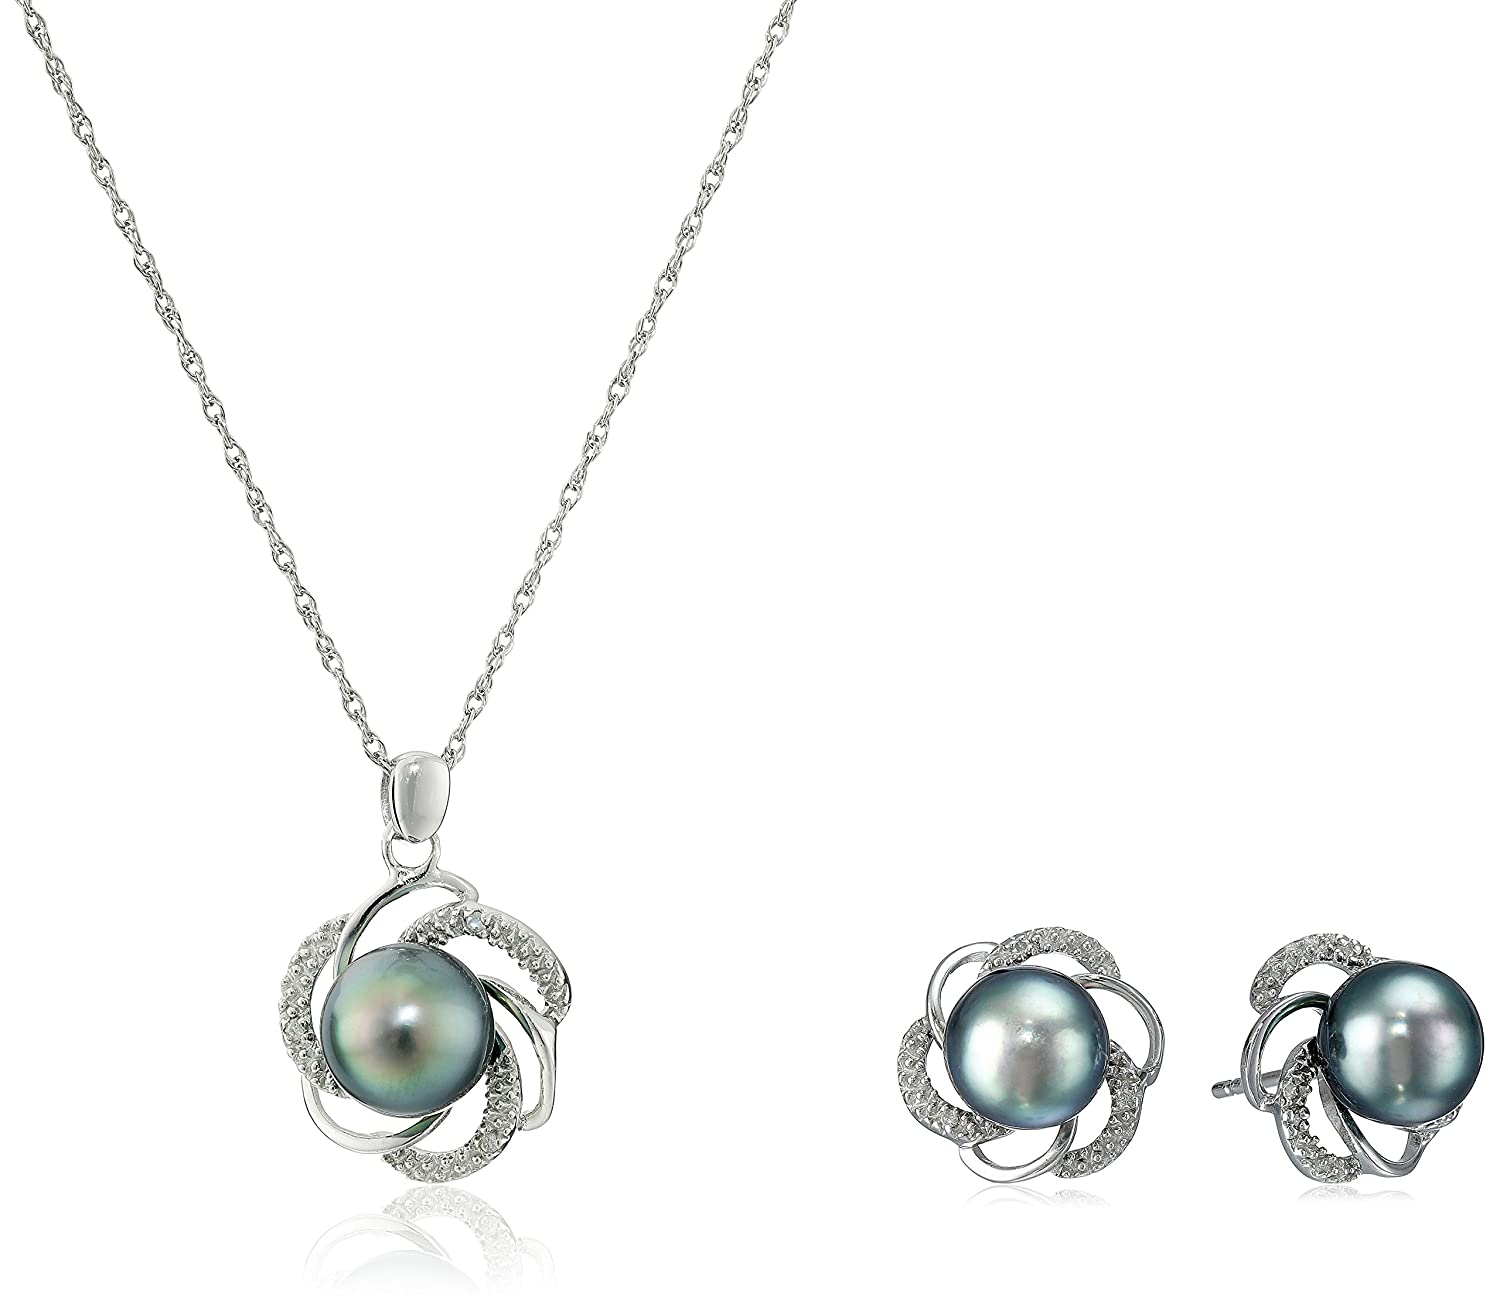 glitzy accent jewelry pearl silver subcat less type swirl diamond necklaces fw watches for overstock rocks and mm pendant necklace